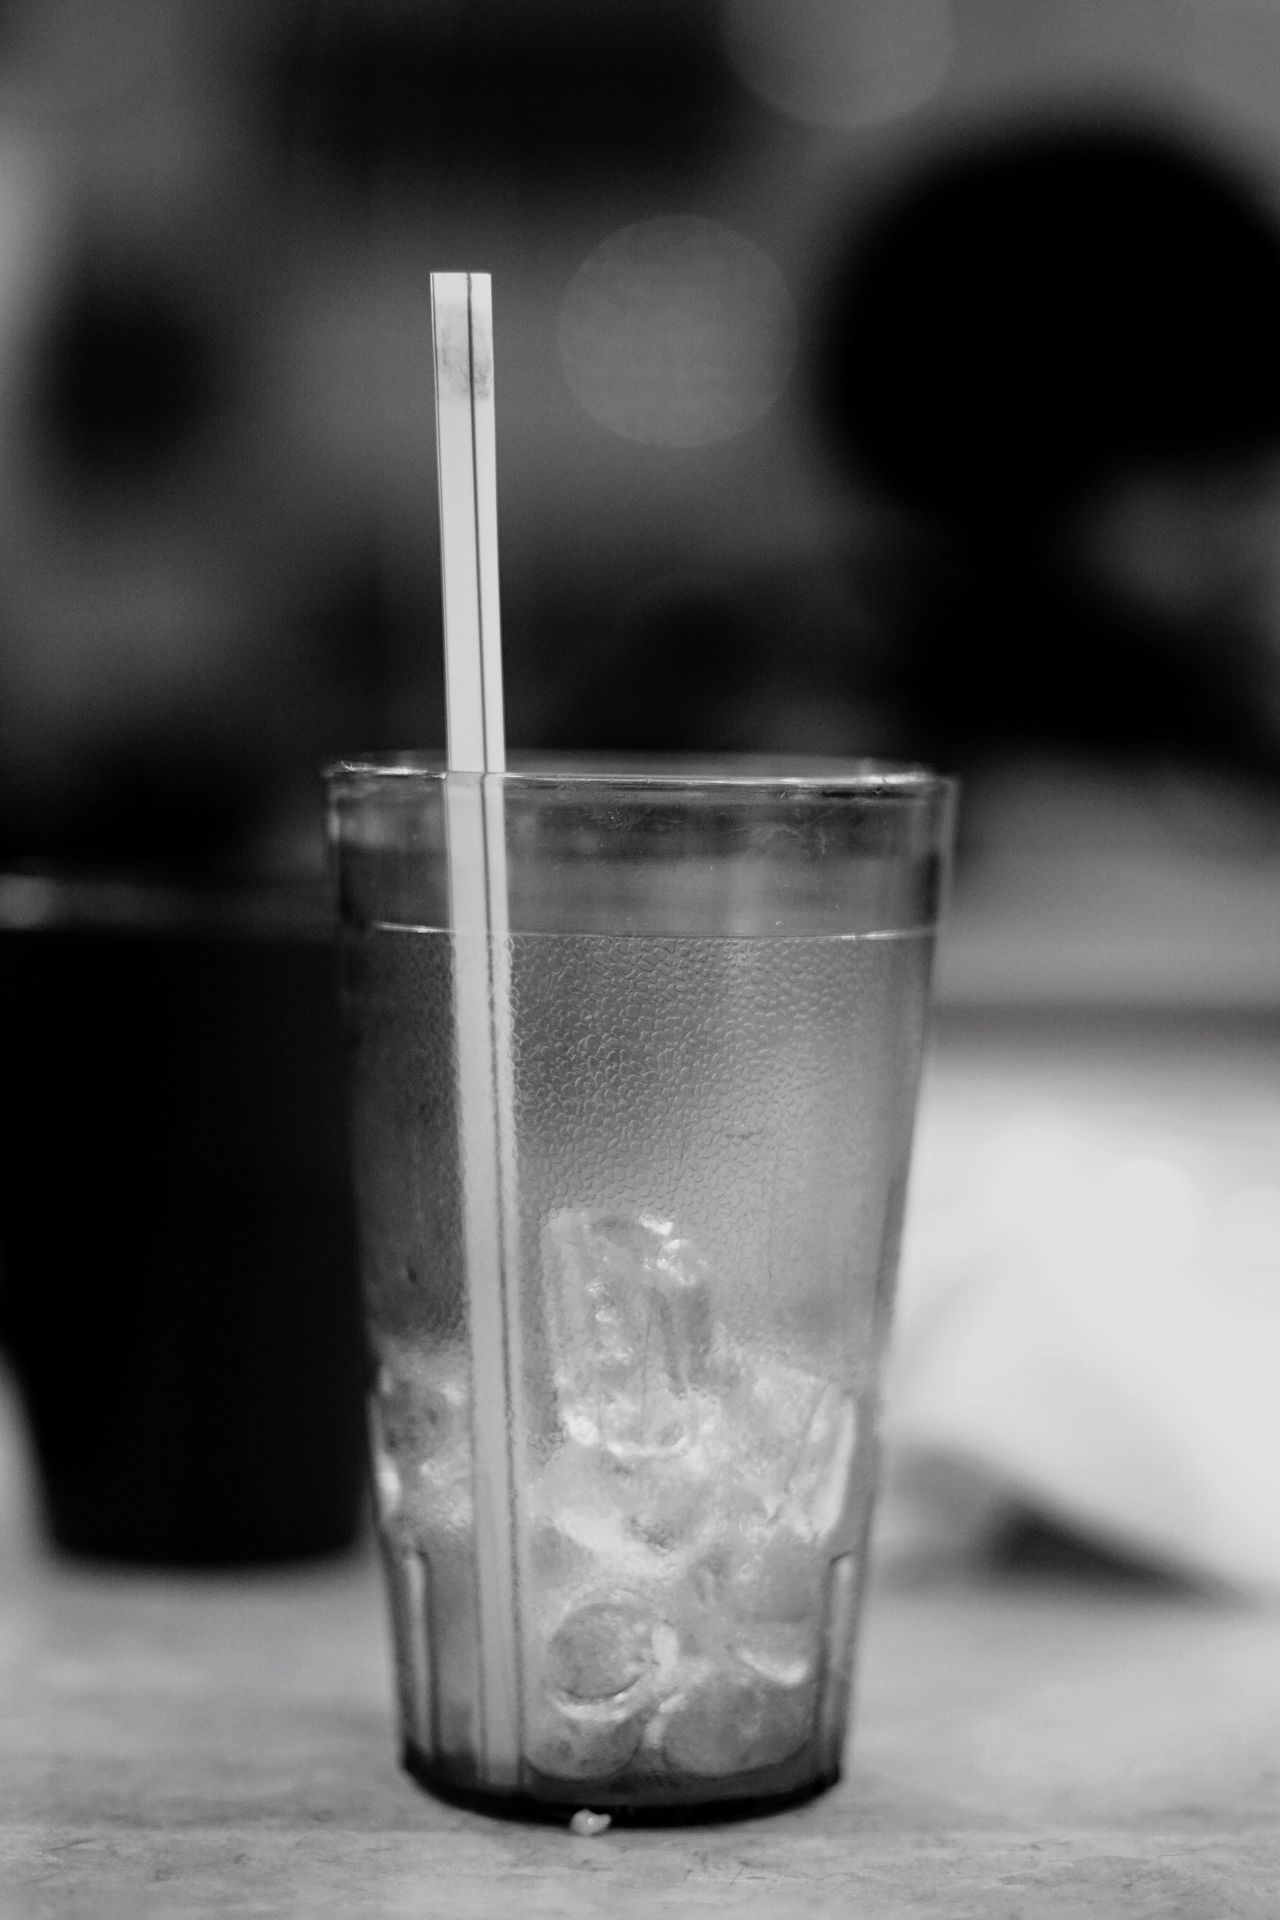 lipstick stain on straw Lipstick Stains Cup Straw Blackandwhite Photography Blackandwhite Black & White Food And Drink Drink Drinking Glass Close-up